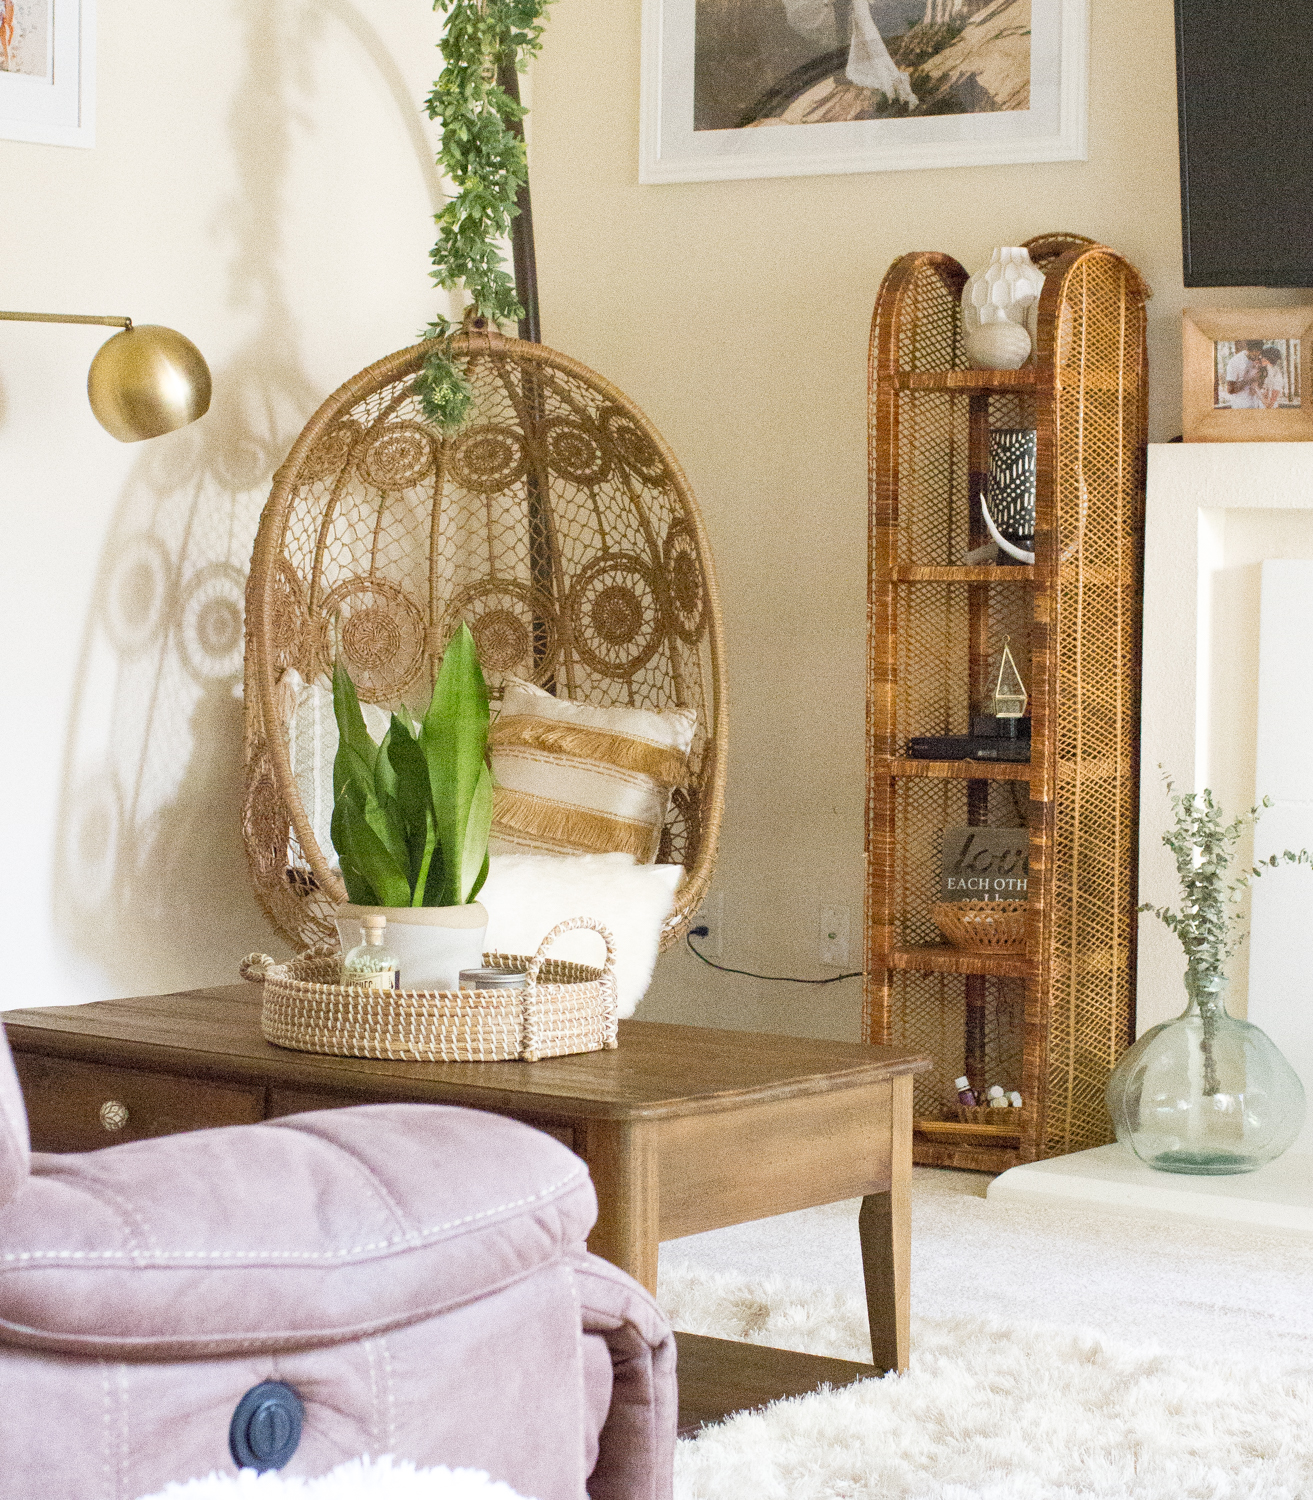 SHOP THIS CHAIR AND OTHERS  HERE